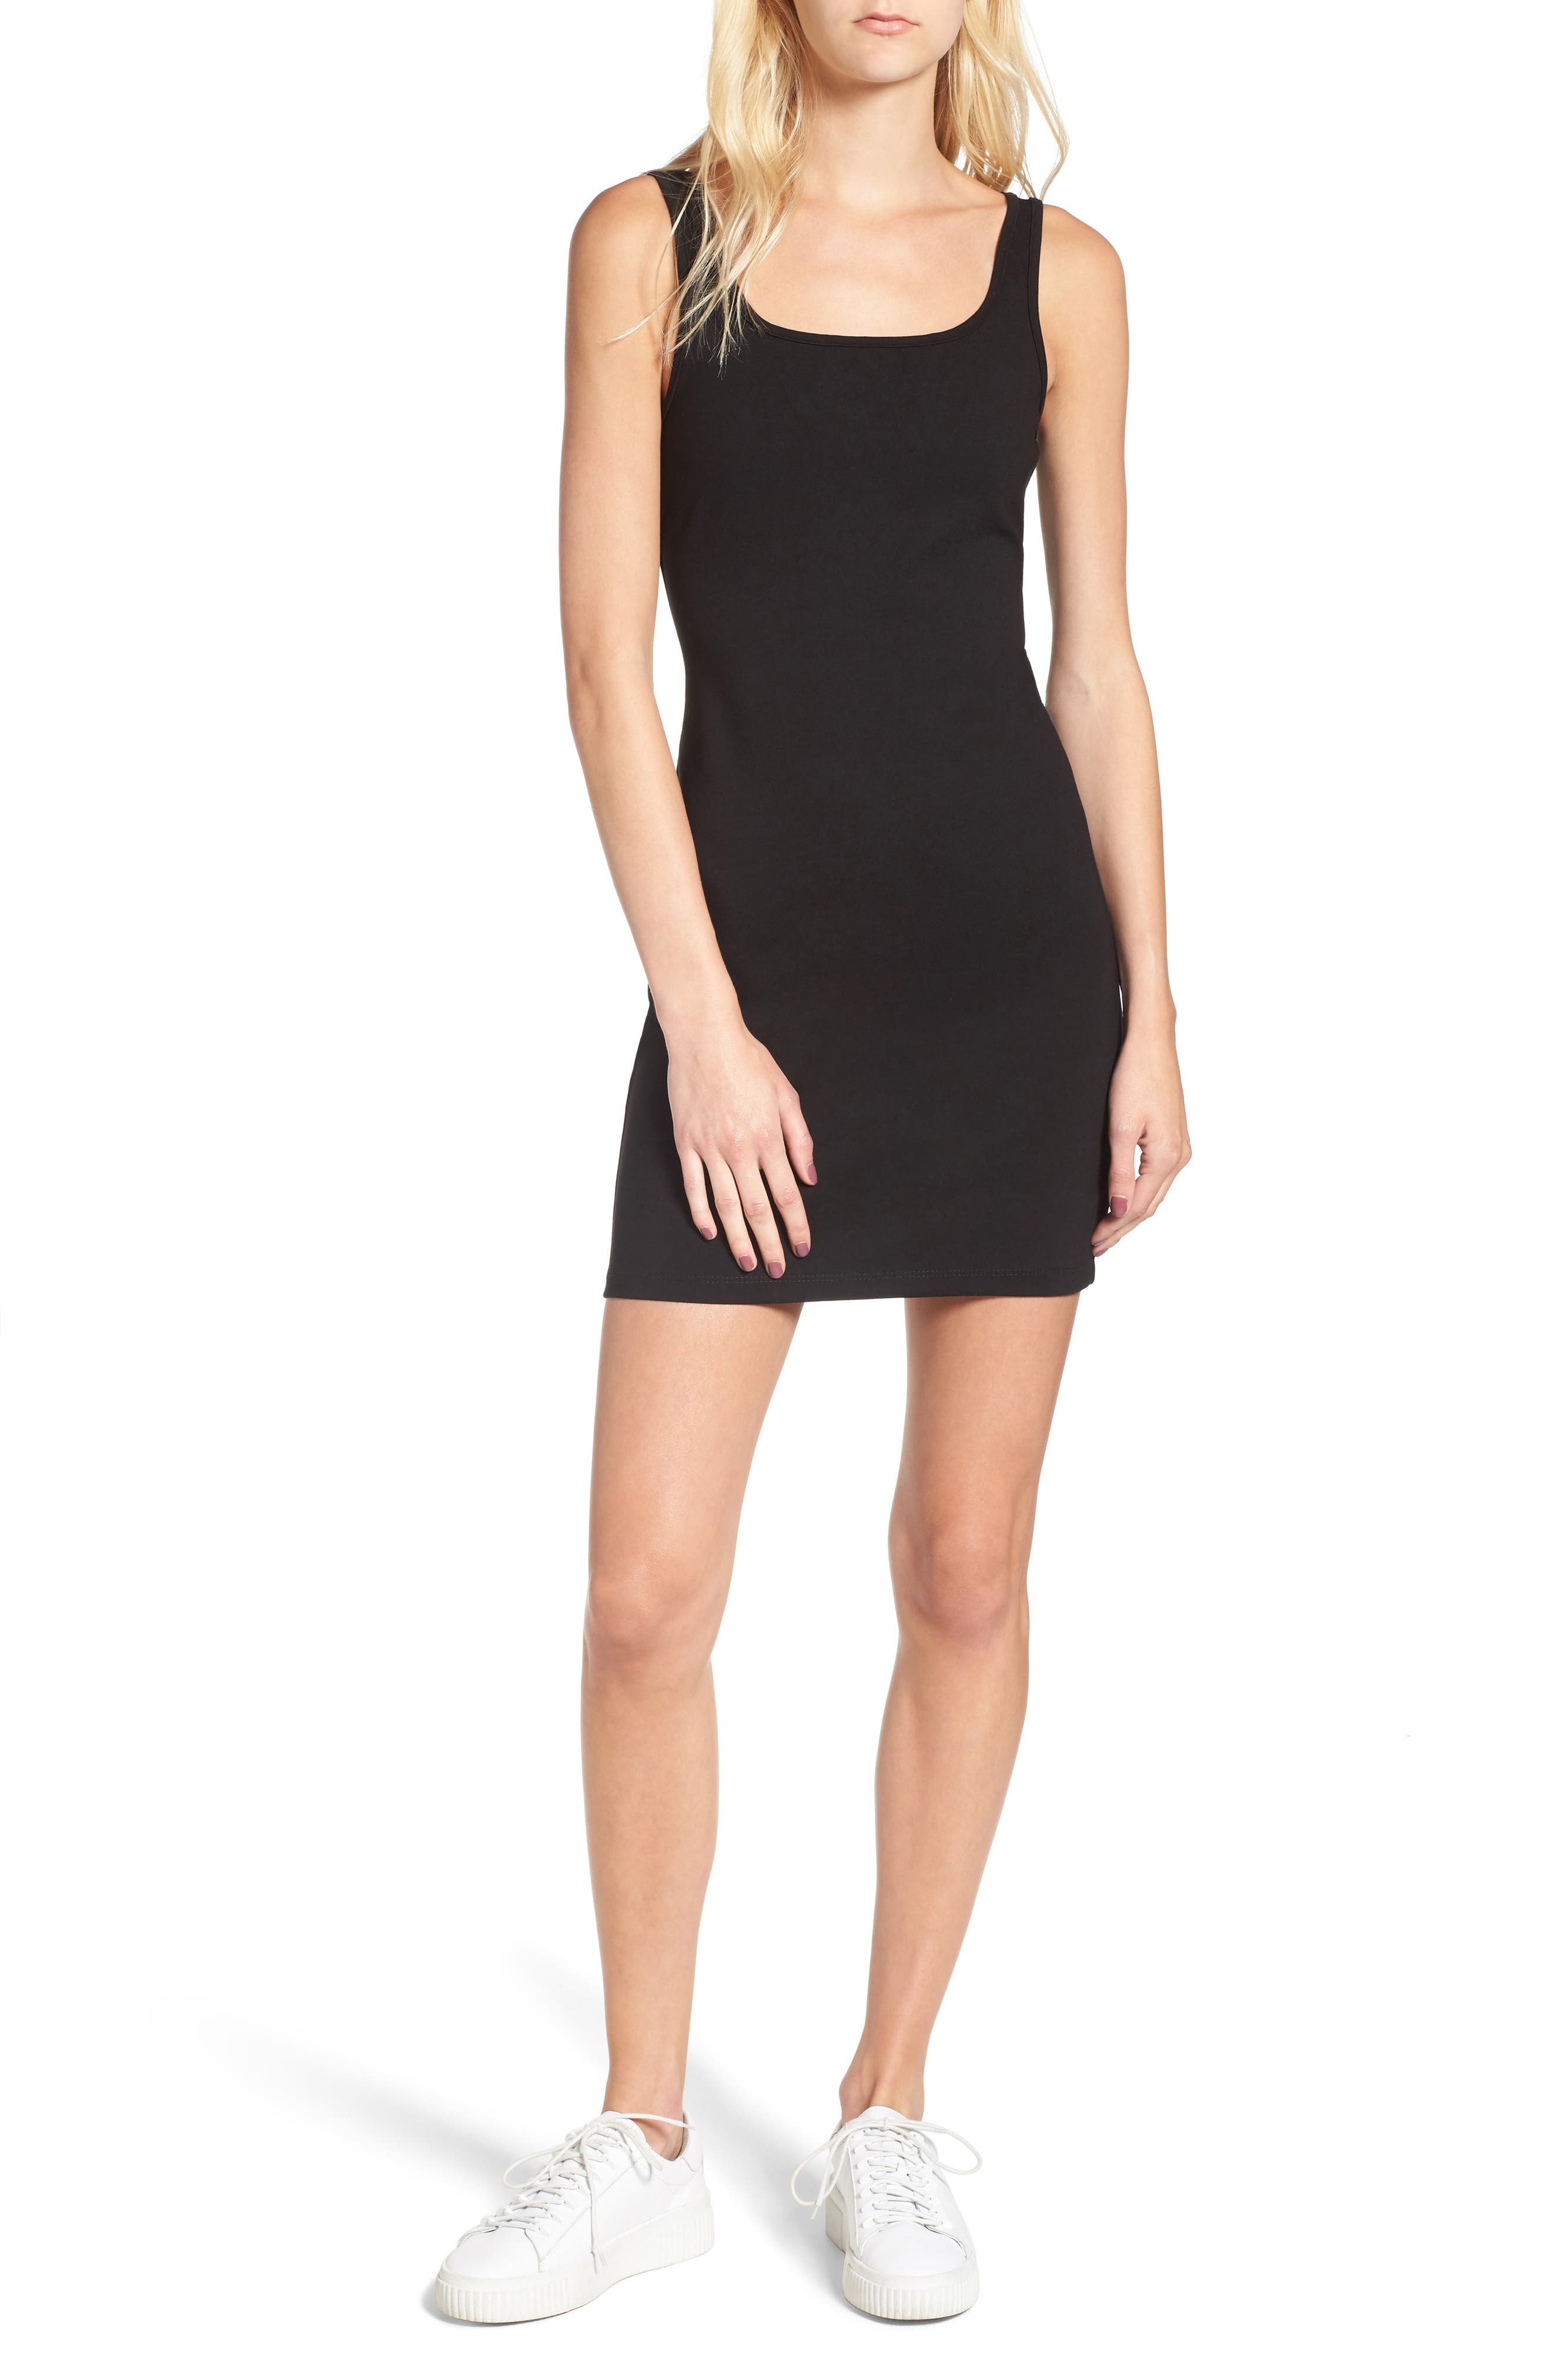 Alternate Image 1 Selected - McGuire Vara Tank Dress